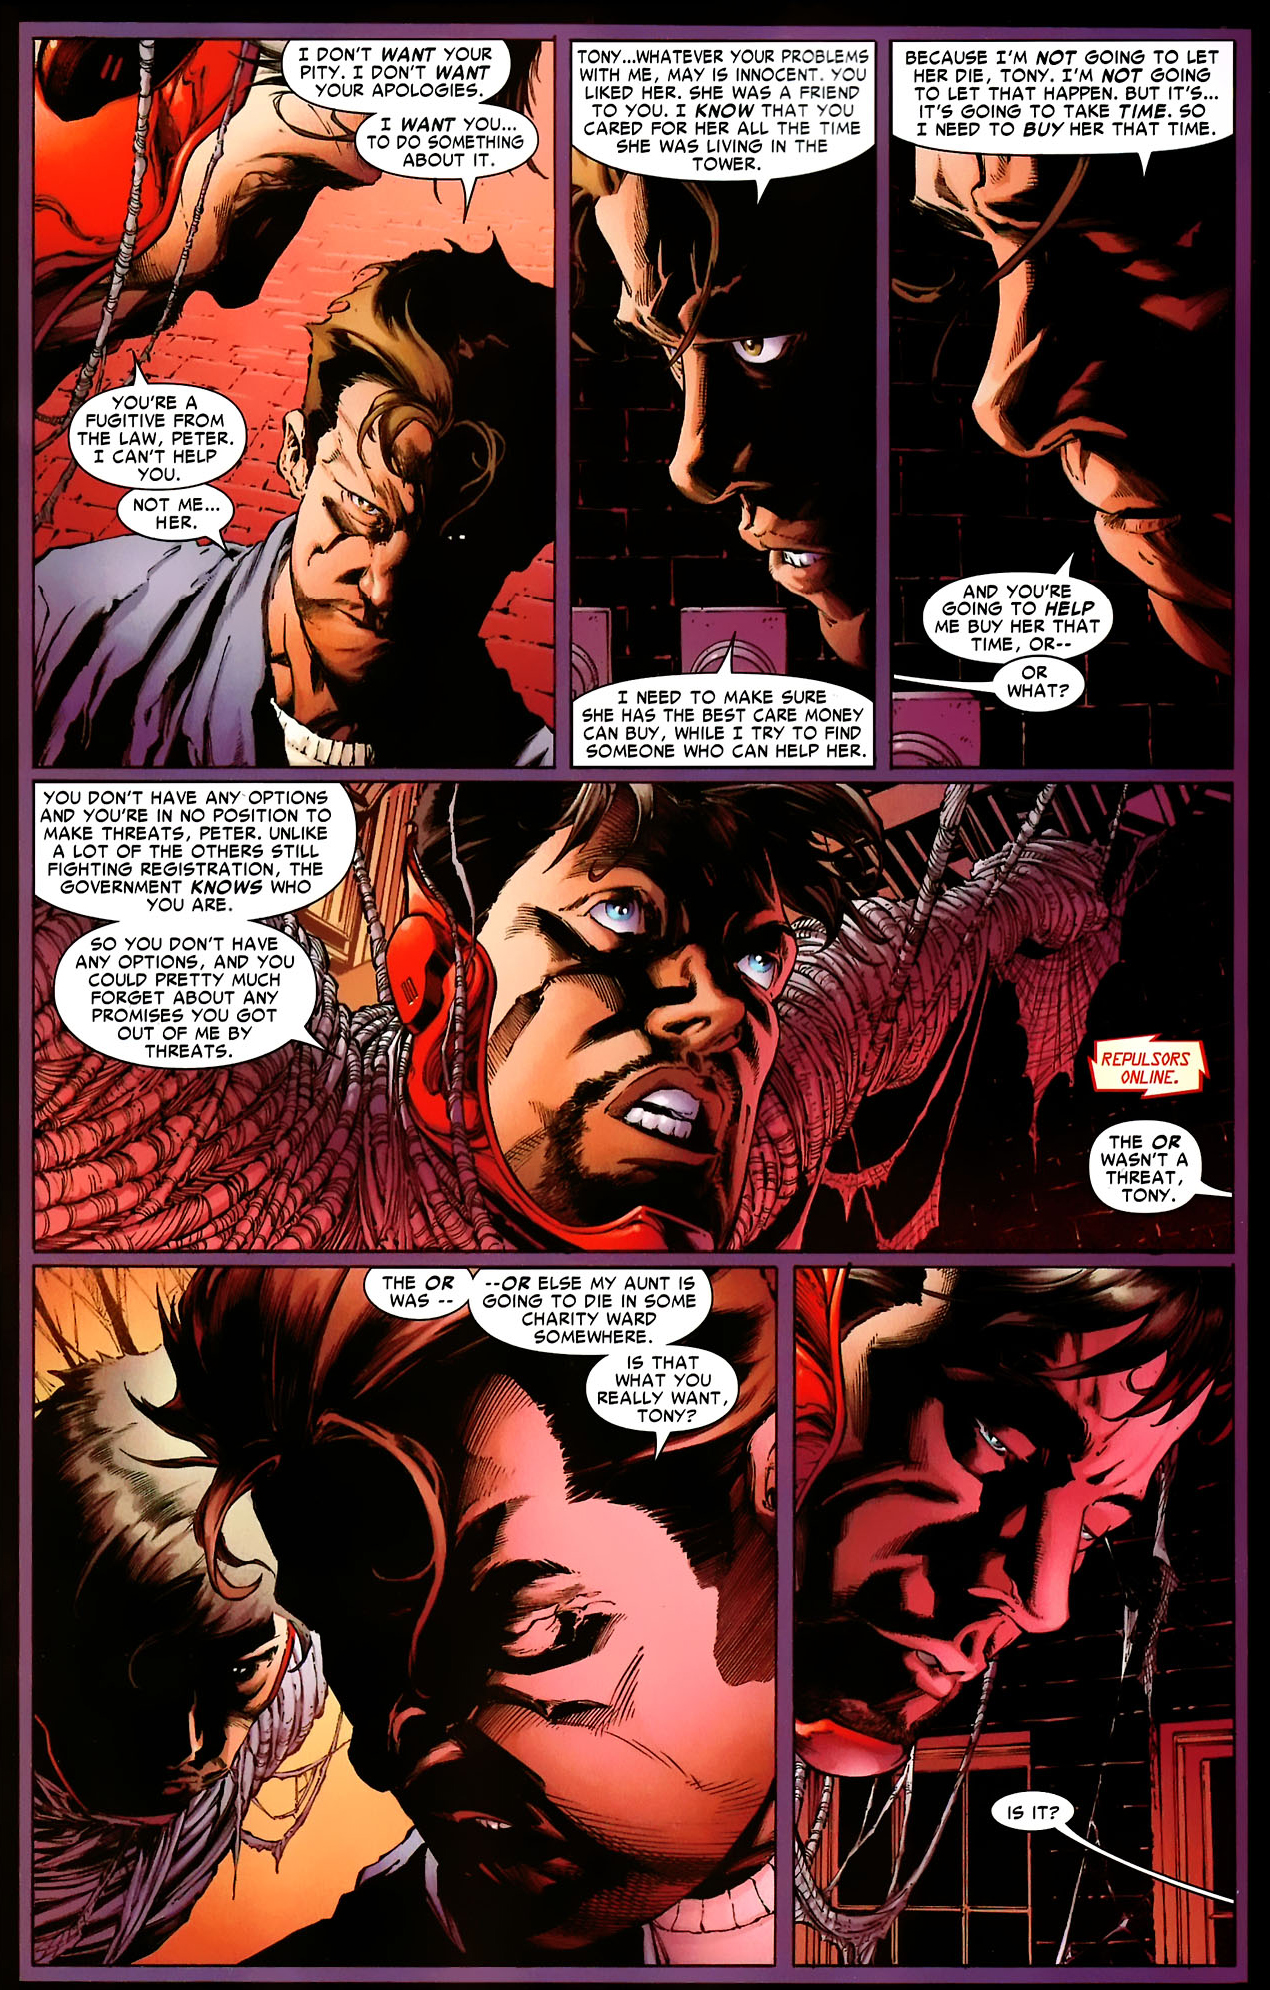 peter parker blames iron man for aunt may's injury